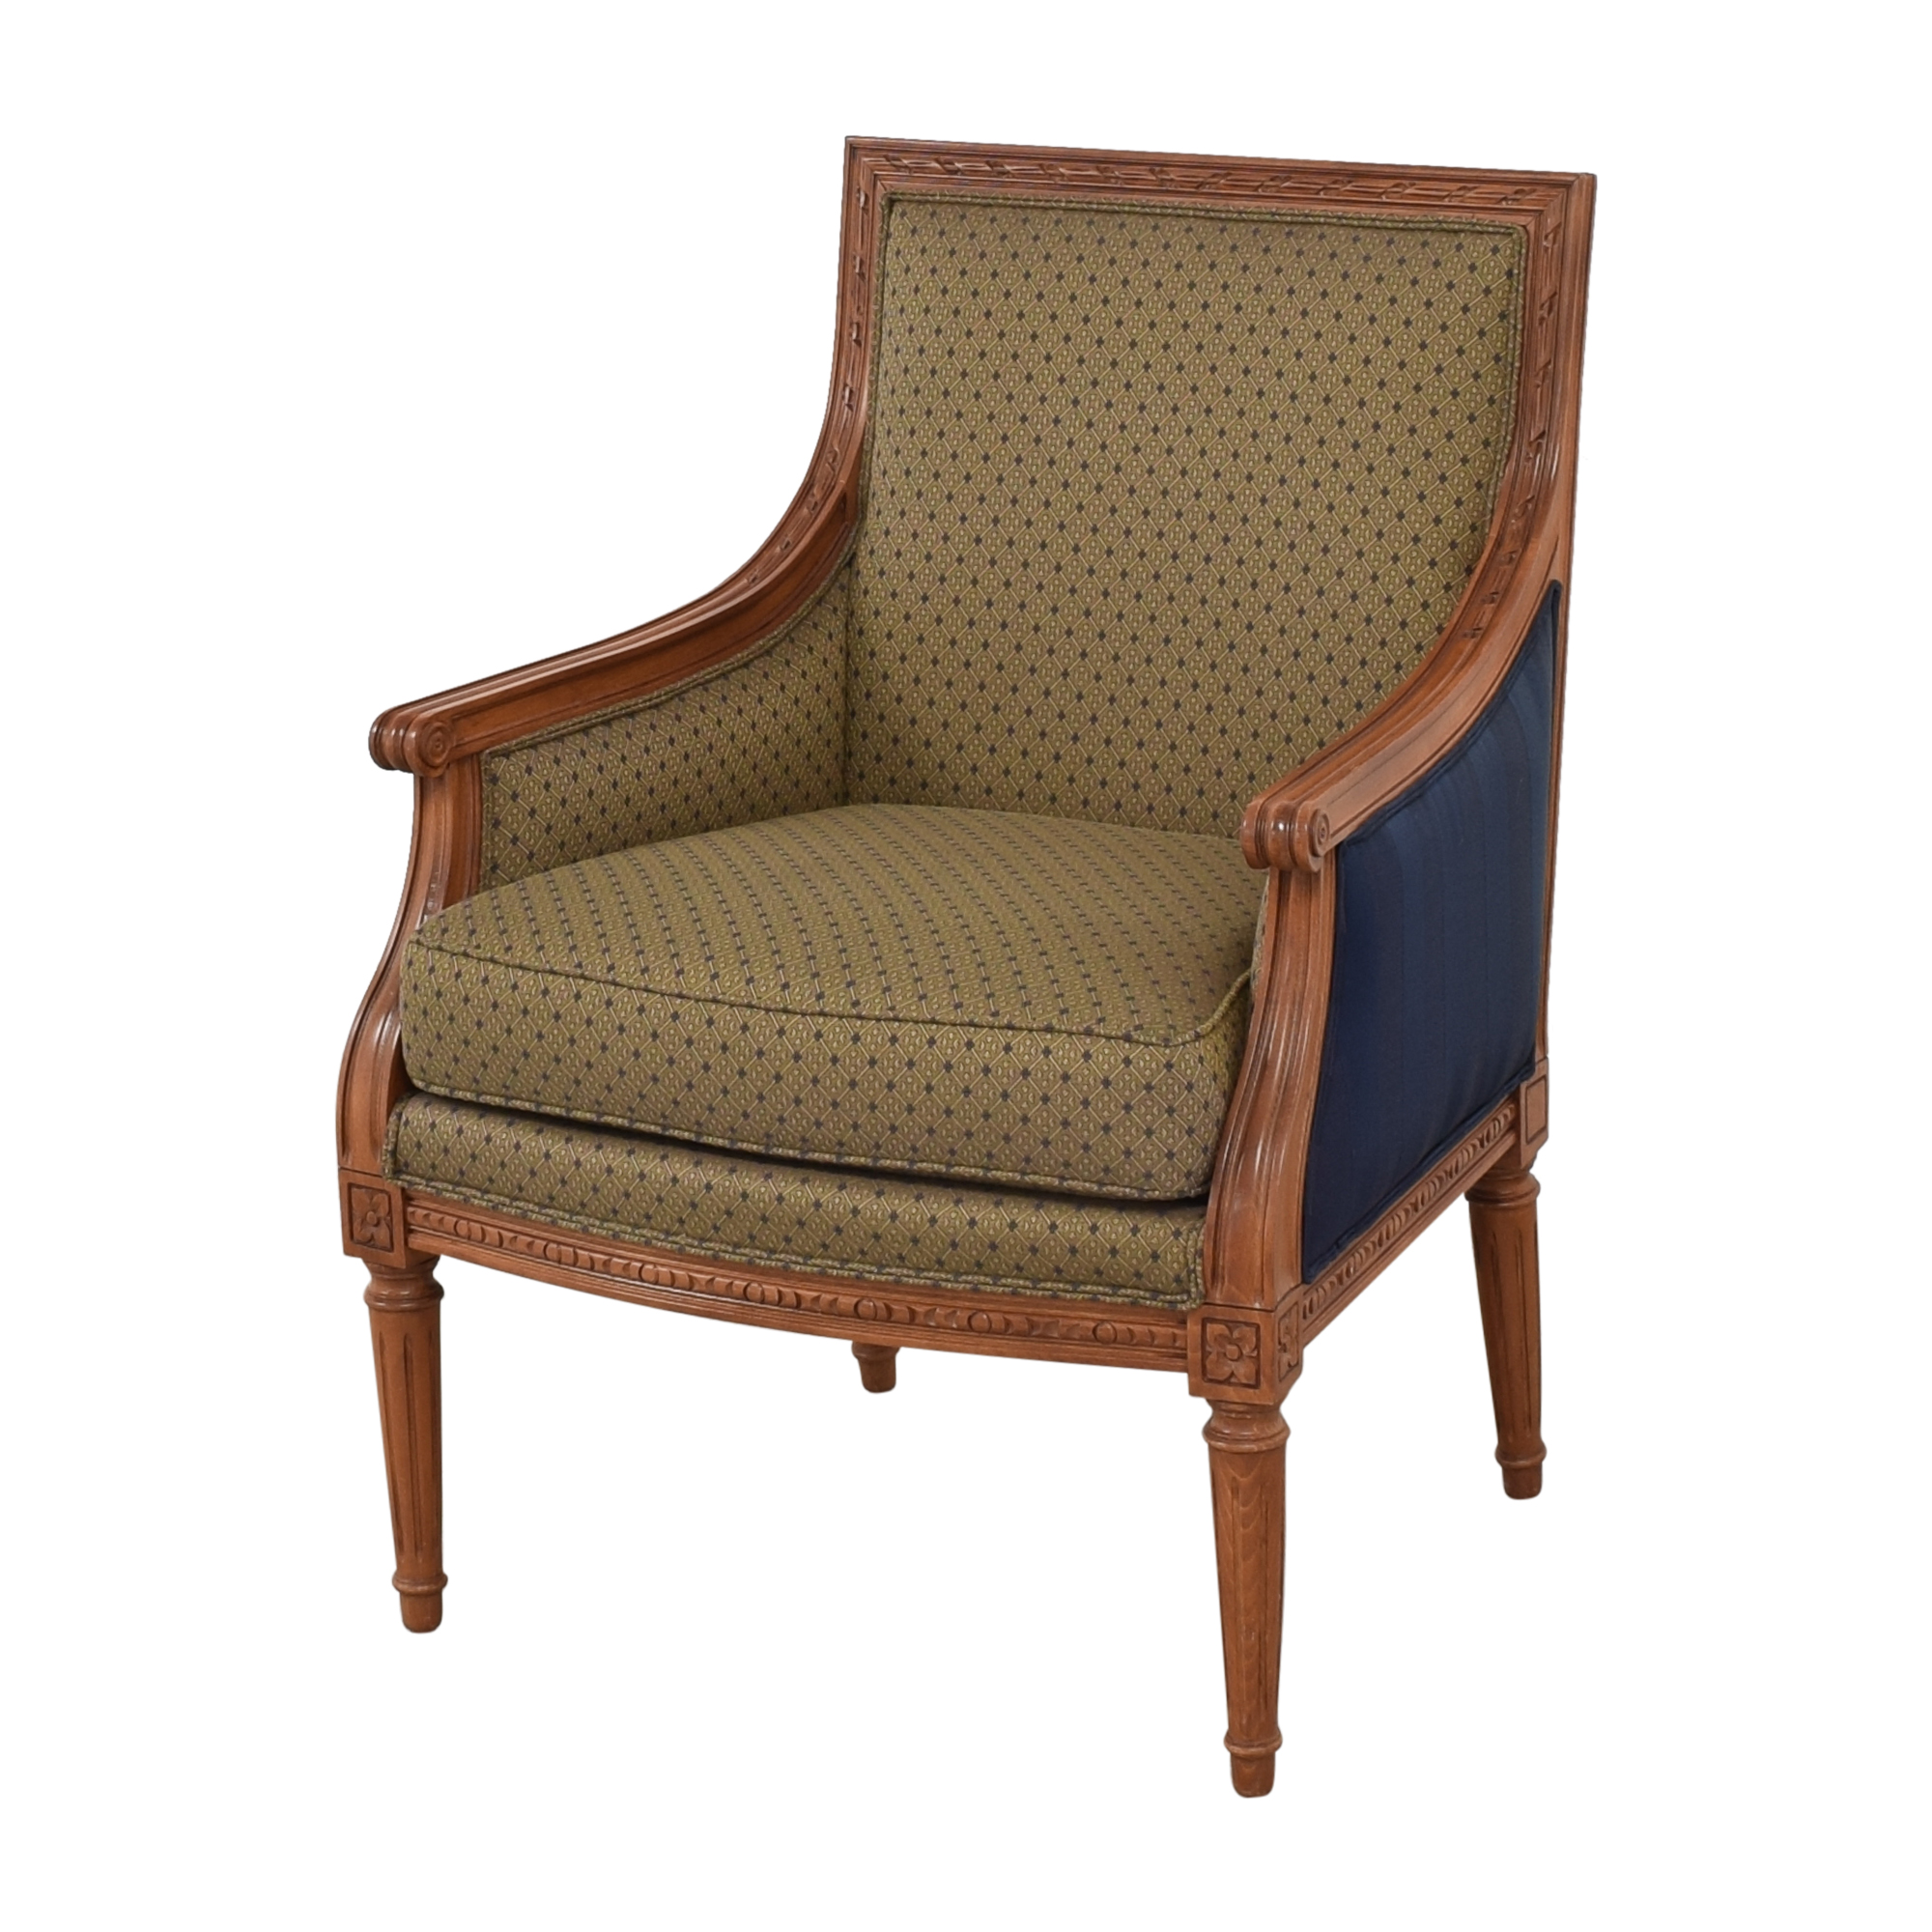 Ethan Allen Gisele Chair / Dining Chairs